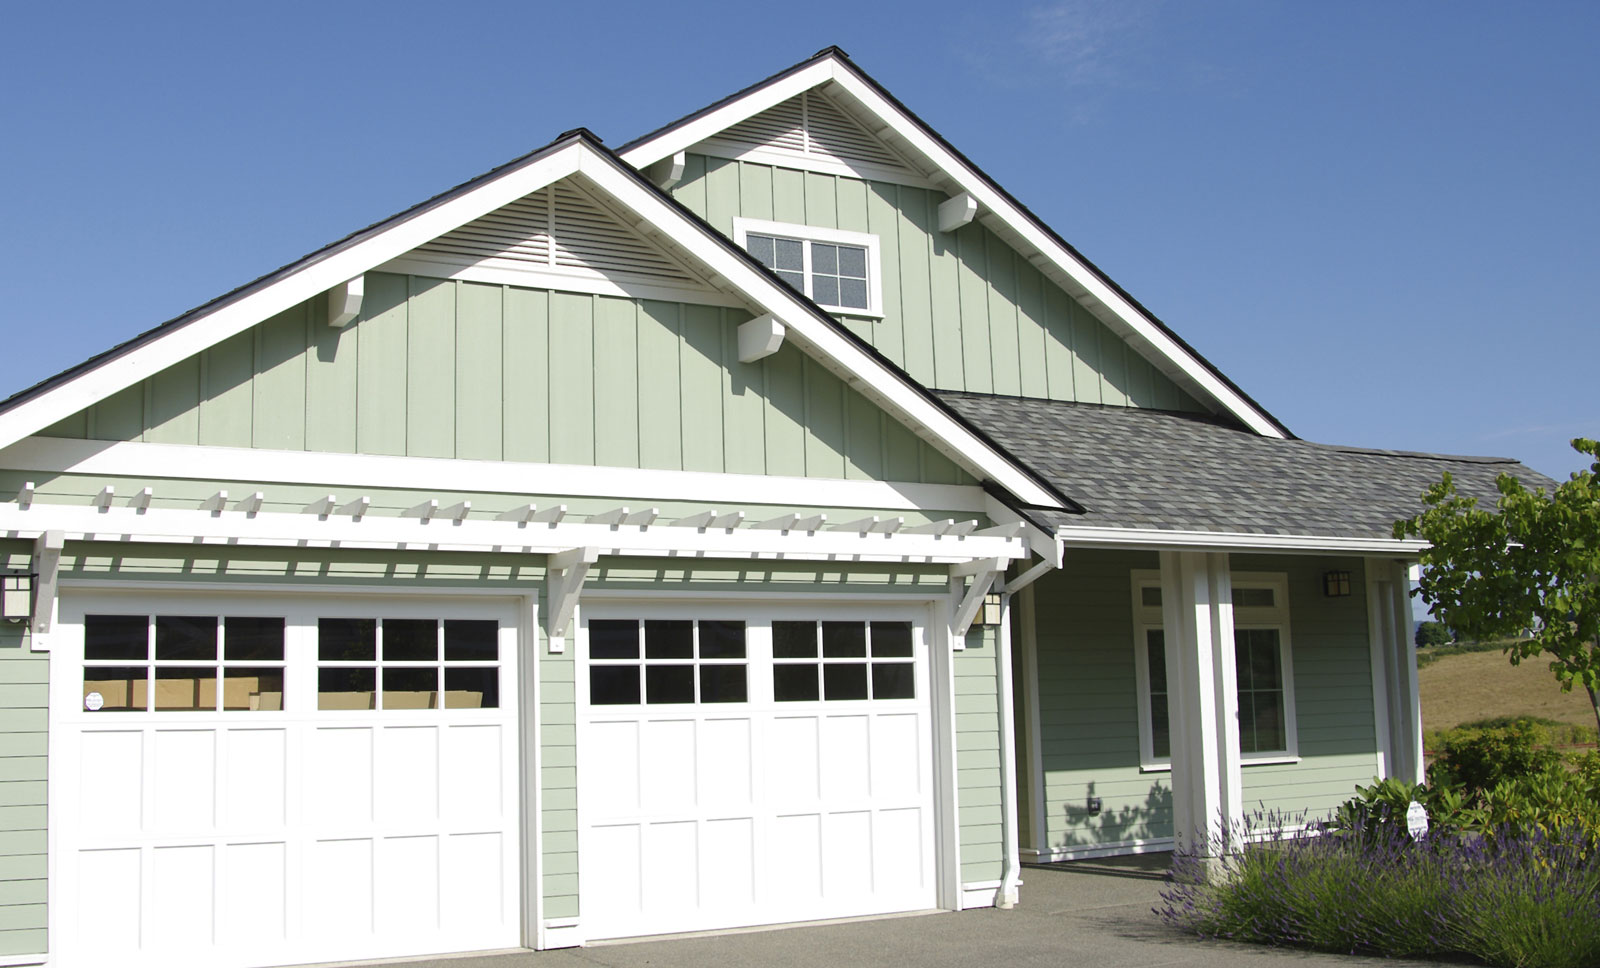 Energy Efficient Garage Doors Save on your bills  A Team Garage DoorsA Team Garage Doors